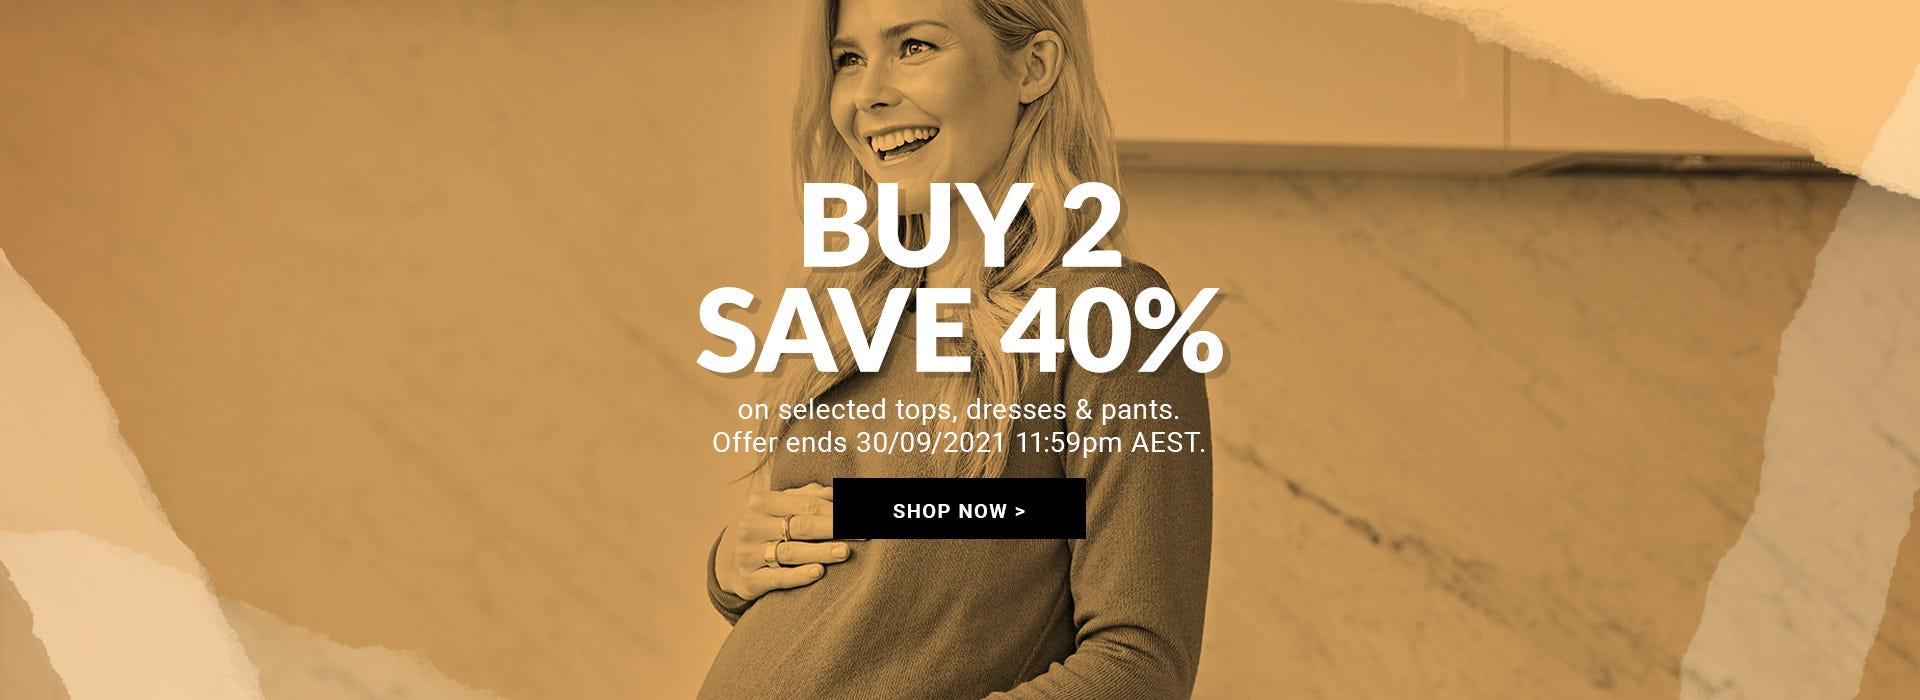 Buy 2, save 40% off clothing